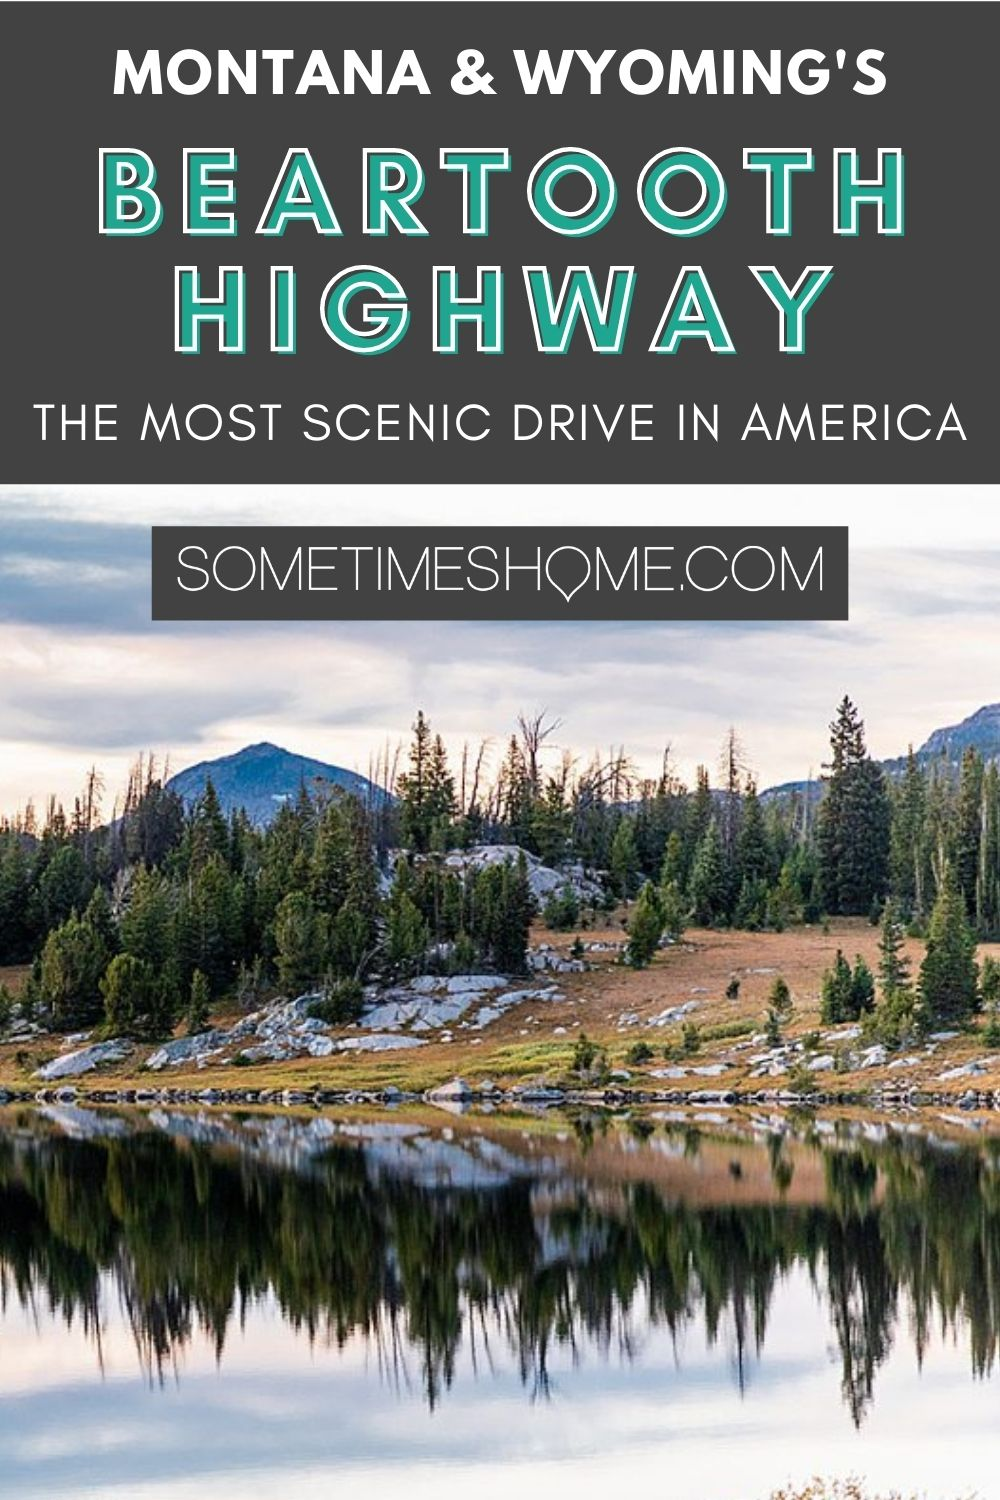 Beartooth Highway, the most scenic drive in America, with a photo of the mountains and evergreen trees reflecting in a lake.